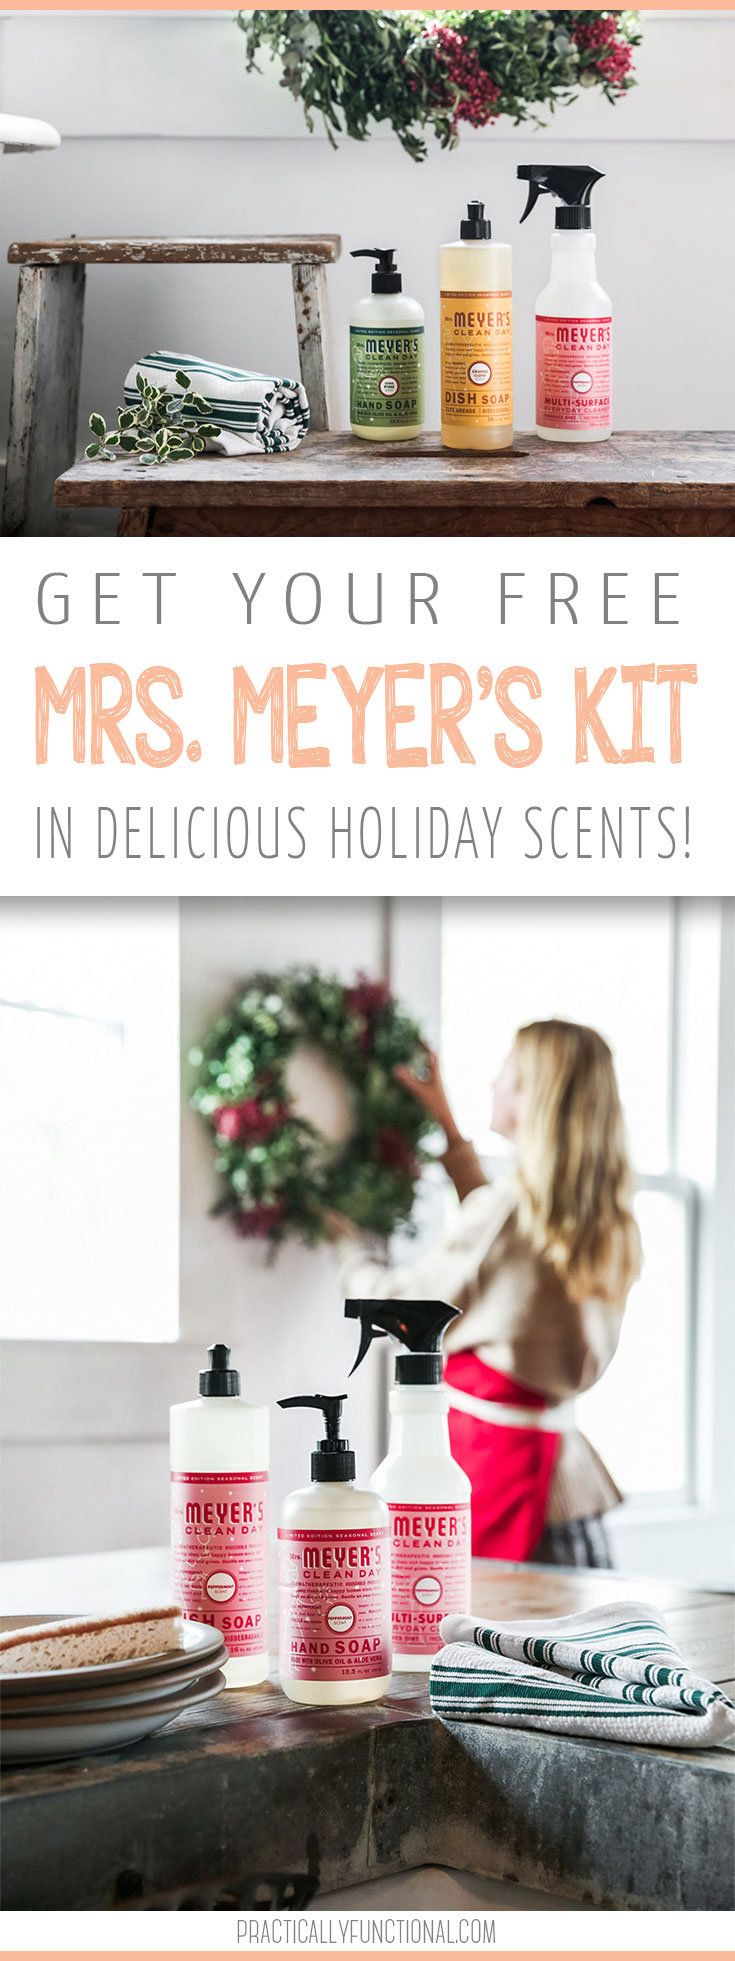 Get your free Mrs. Meyer's Kit in delicious Holiday Scents!